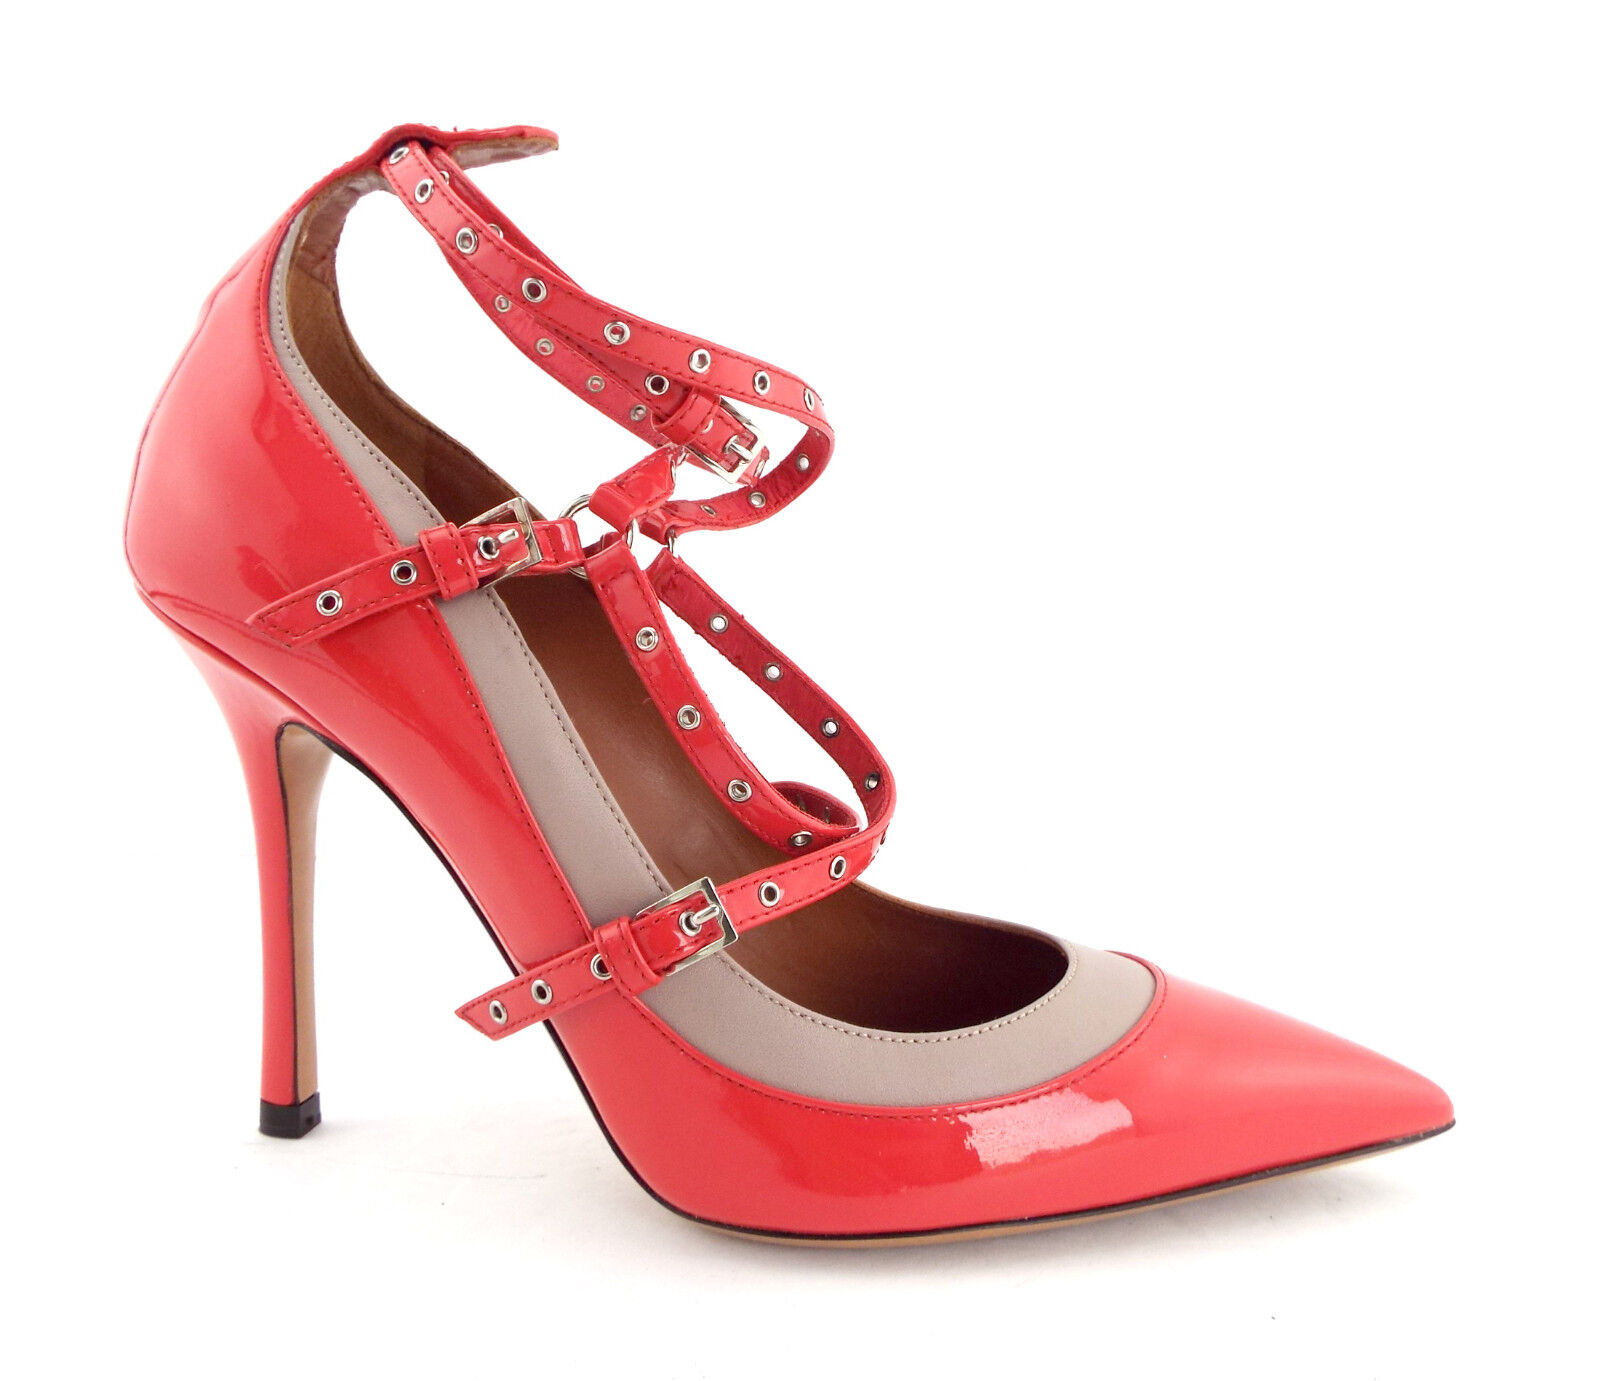 New VALENTINO Size 7 LOVE LATCH Grommet Pink Heels Pumps Shoes 37